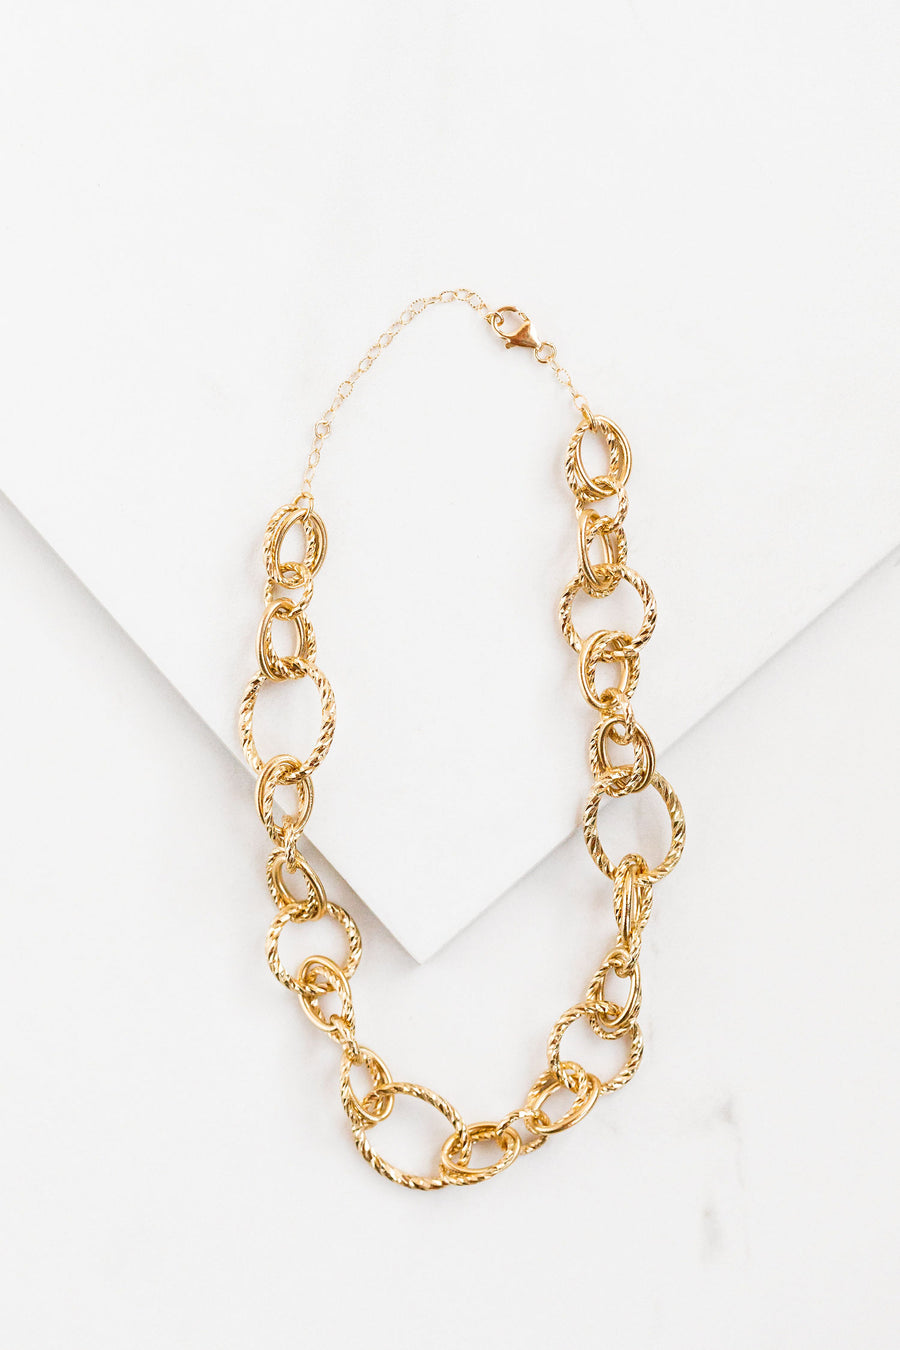 Find the perfect necklace you're looking for from Charme Silkiner! This beautiful 24k gold overlay with diamond cut chain necklace is simple yet perfect. Great for layering or wearing alone the Guiliana Necklace is the perfect piece of unique jewelry that everyone should own.